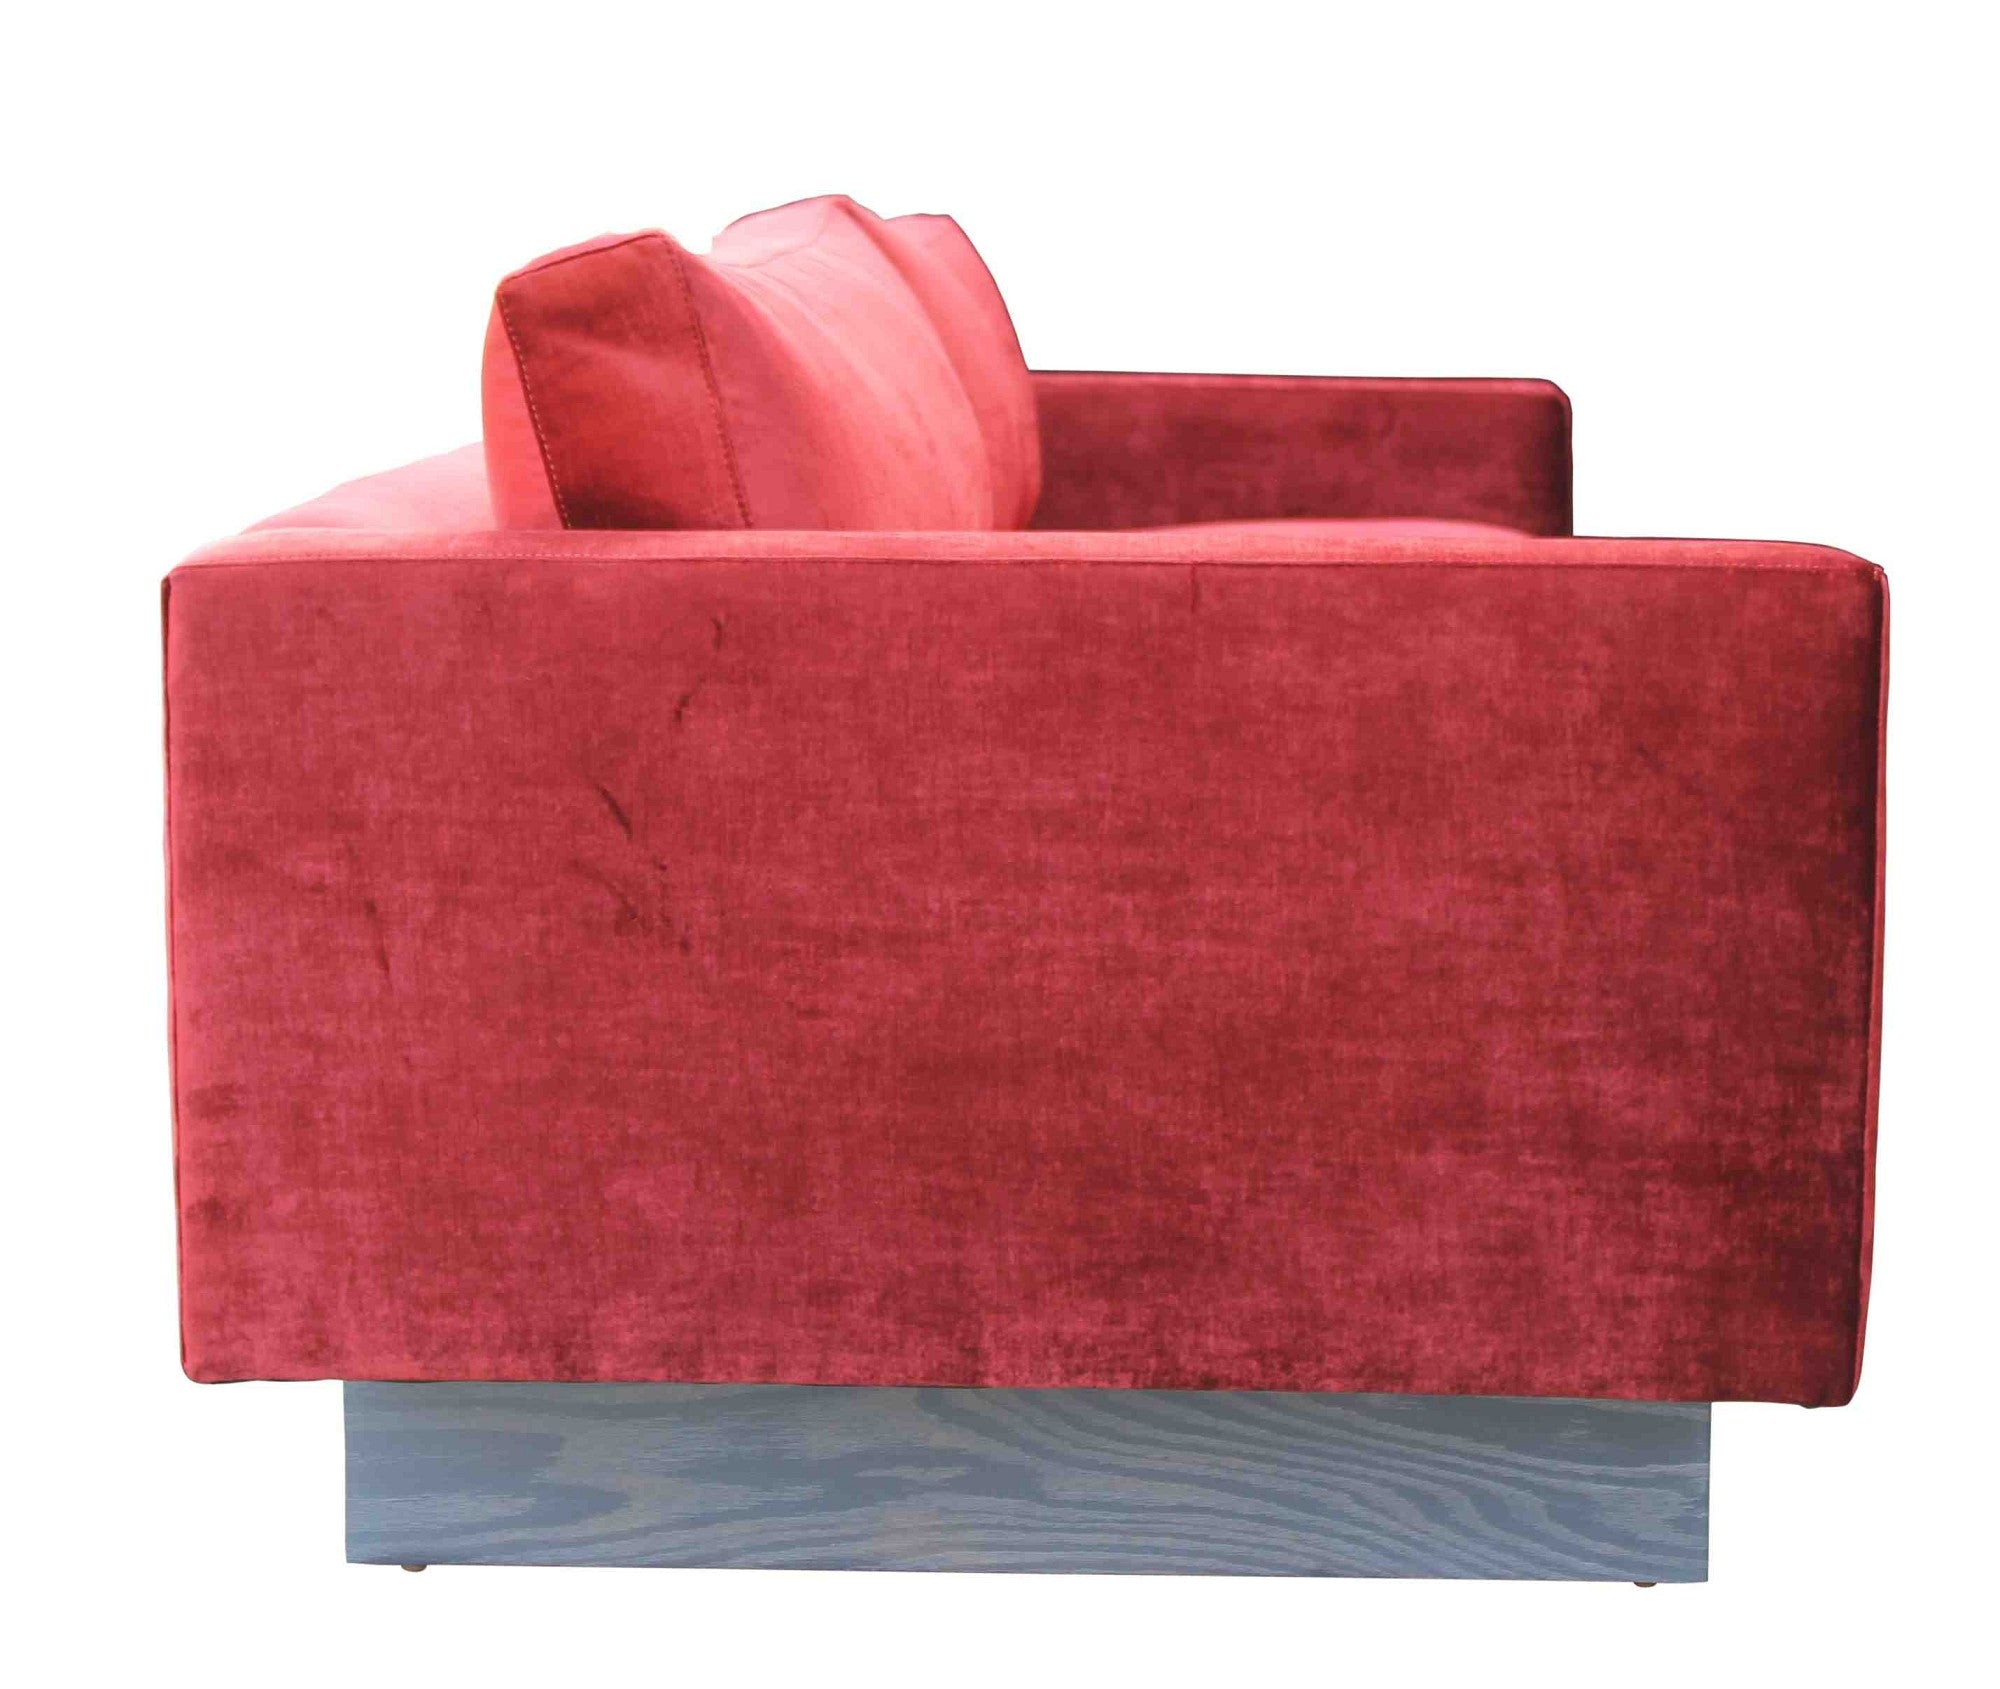 Sexy Tufted Red Sofa Custom Upholstered Home Furnishings